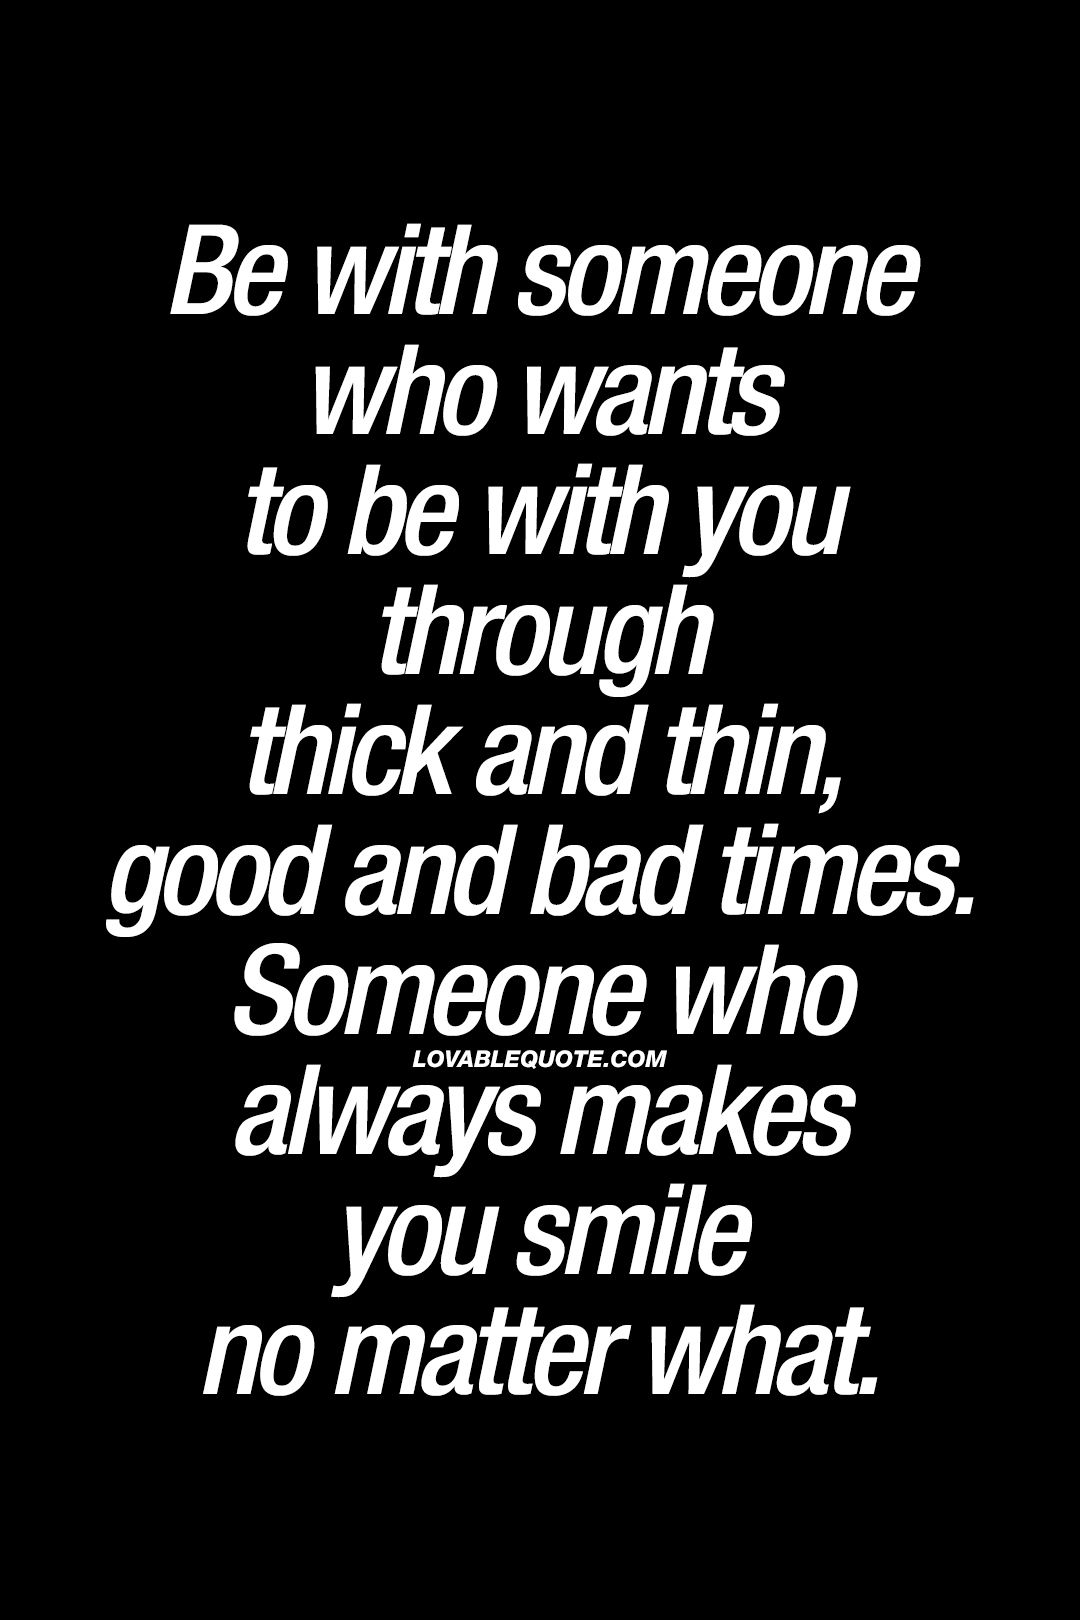 Be With Someone Who Wants To Be With You Through Thick And Thin